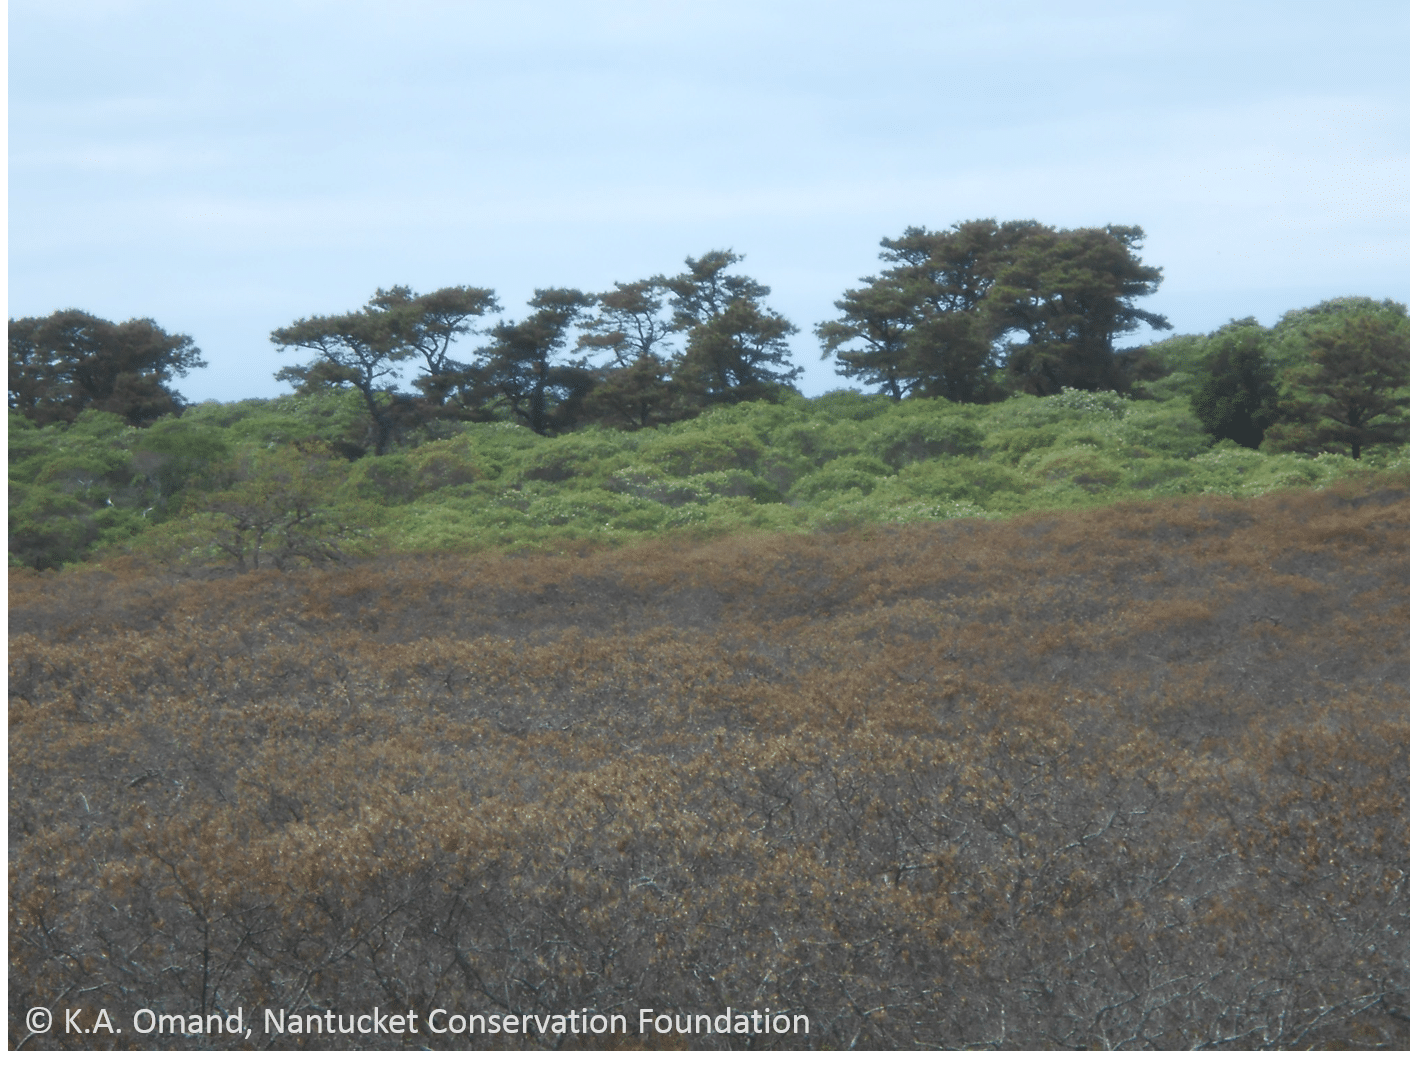 Close-up of the dividing line between frost-withered scrub oak and those with undamaged leaves.